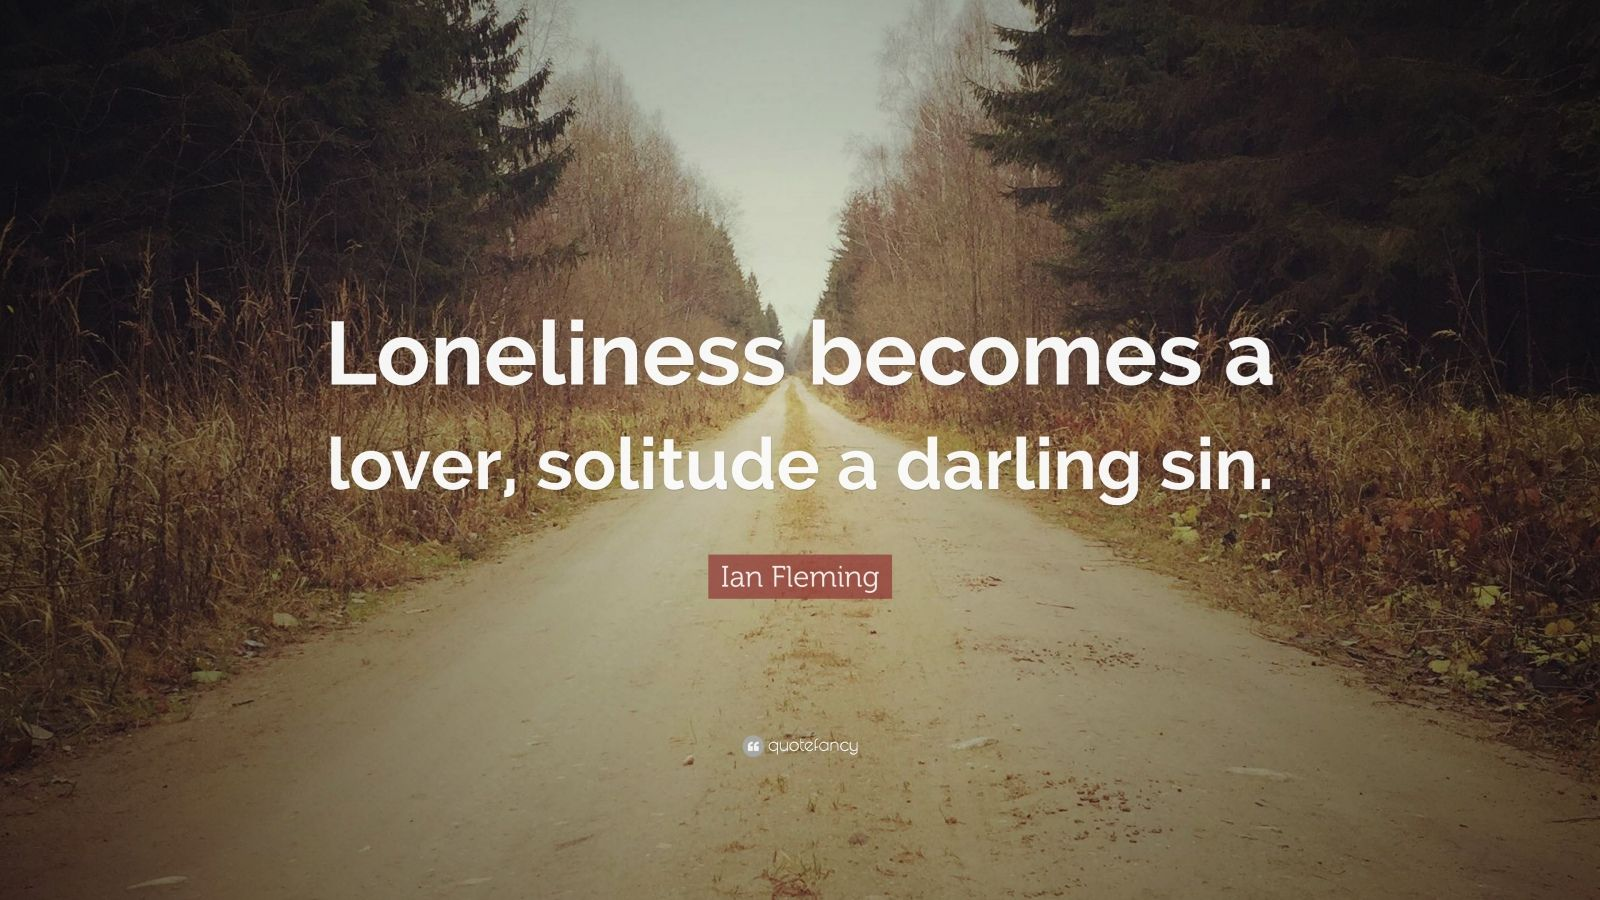 Lonely Quotes Wallpaper Loneliness Quotes 40 Wallpapers Quotefancy